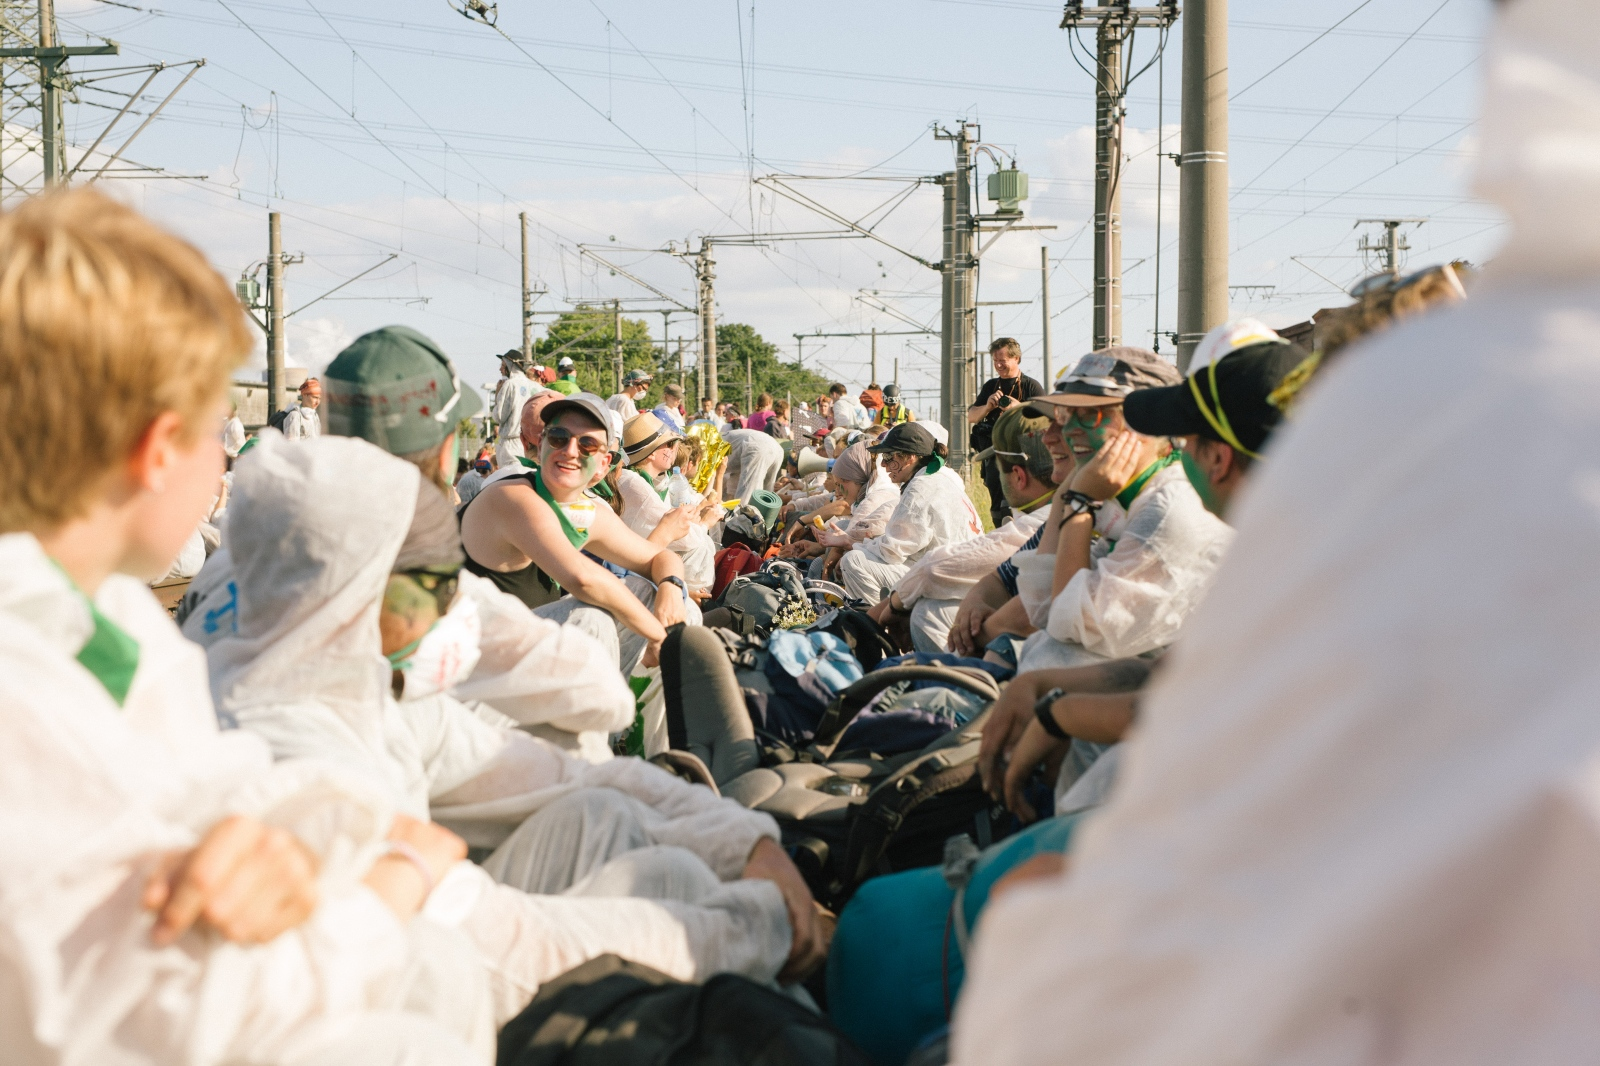 Sit-in on the train tracks of the so-called coal-train near Kraftwerk Neurath. 06-21-2019